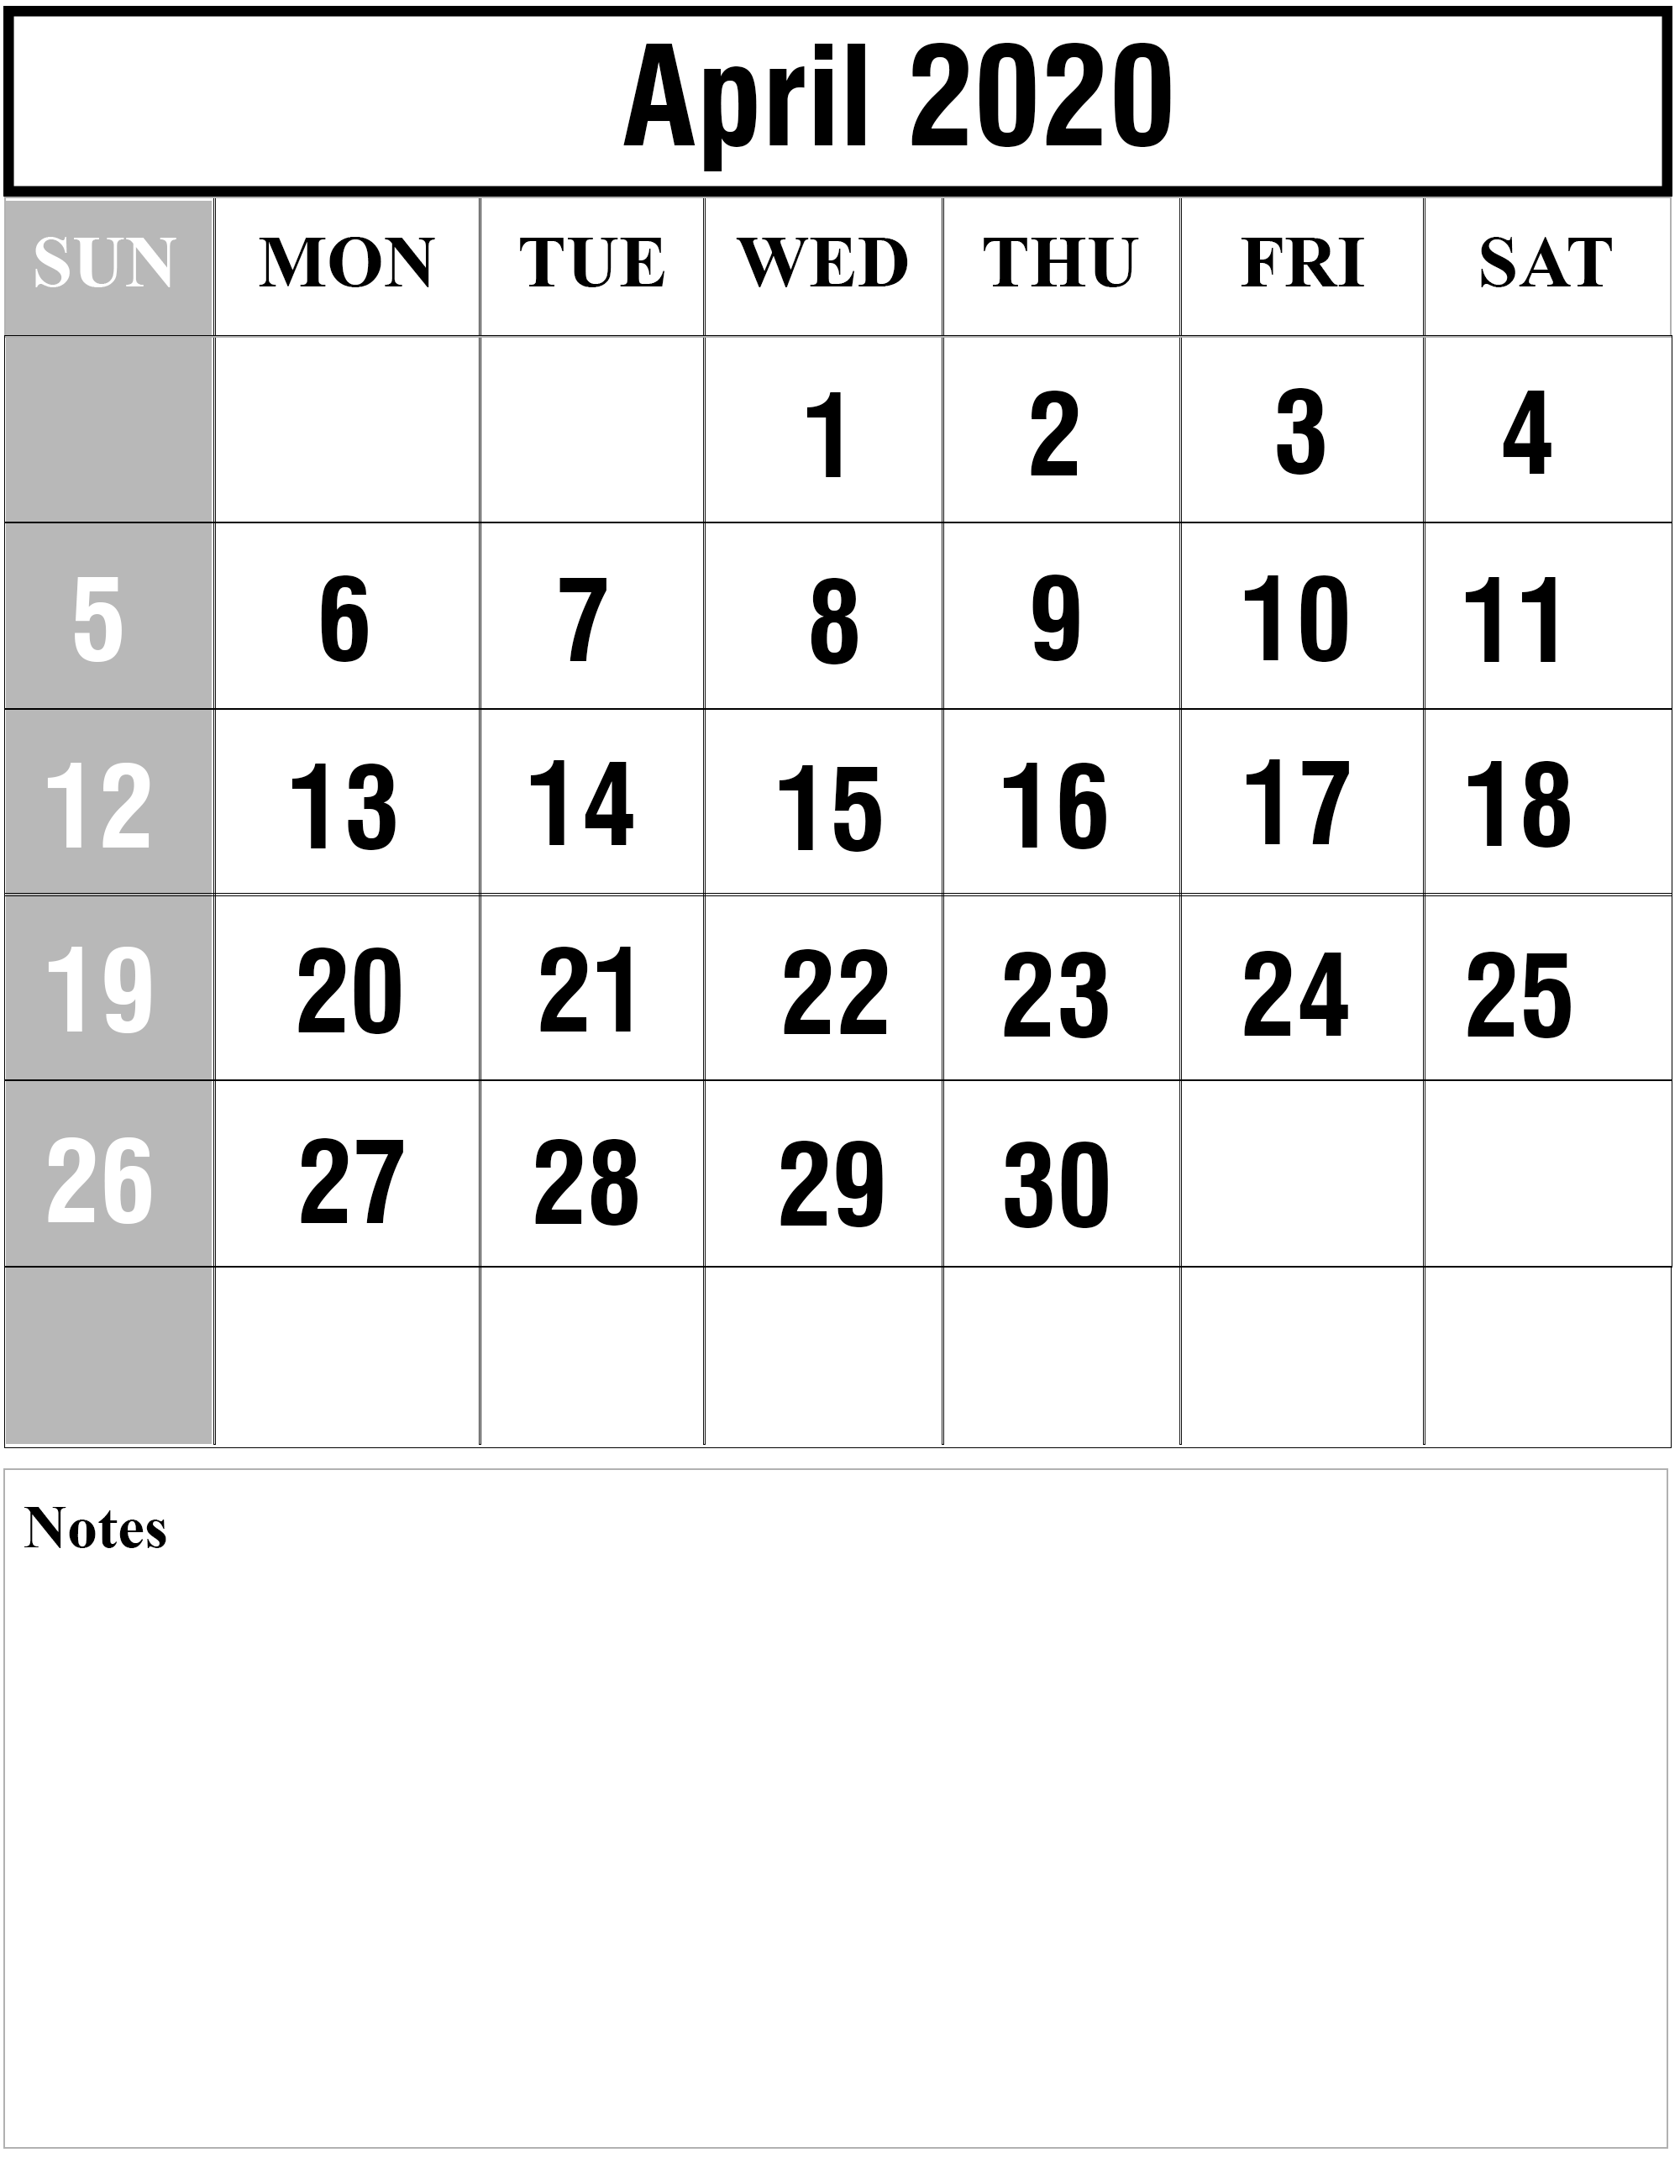 April 2020 Printable Calendar Pdf april 2020 1 | Printable Template Calendar